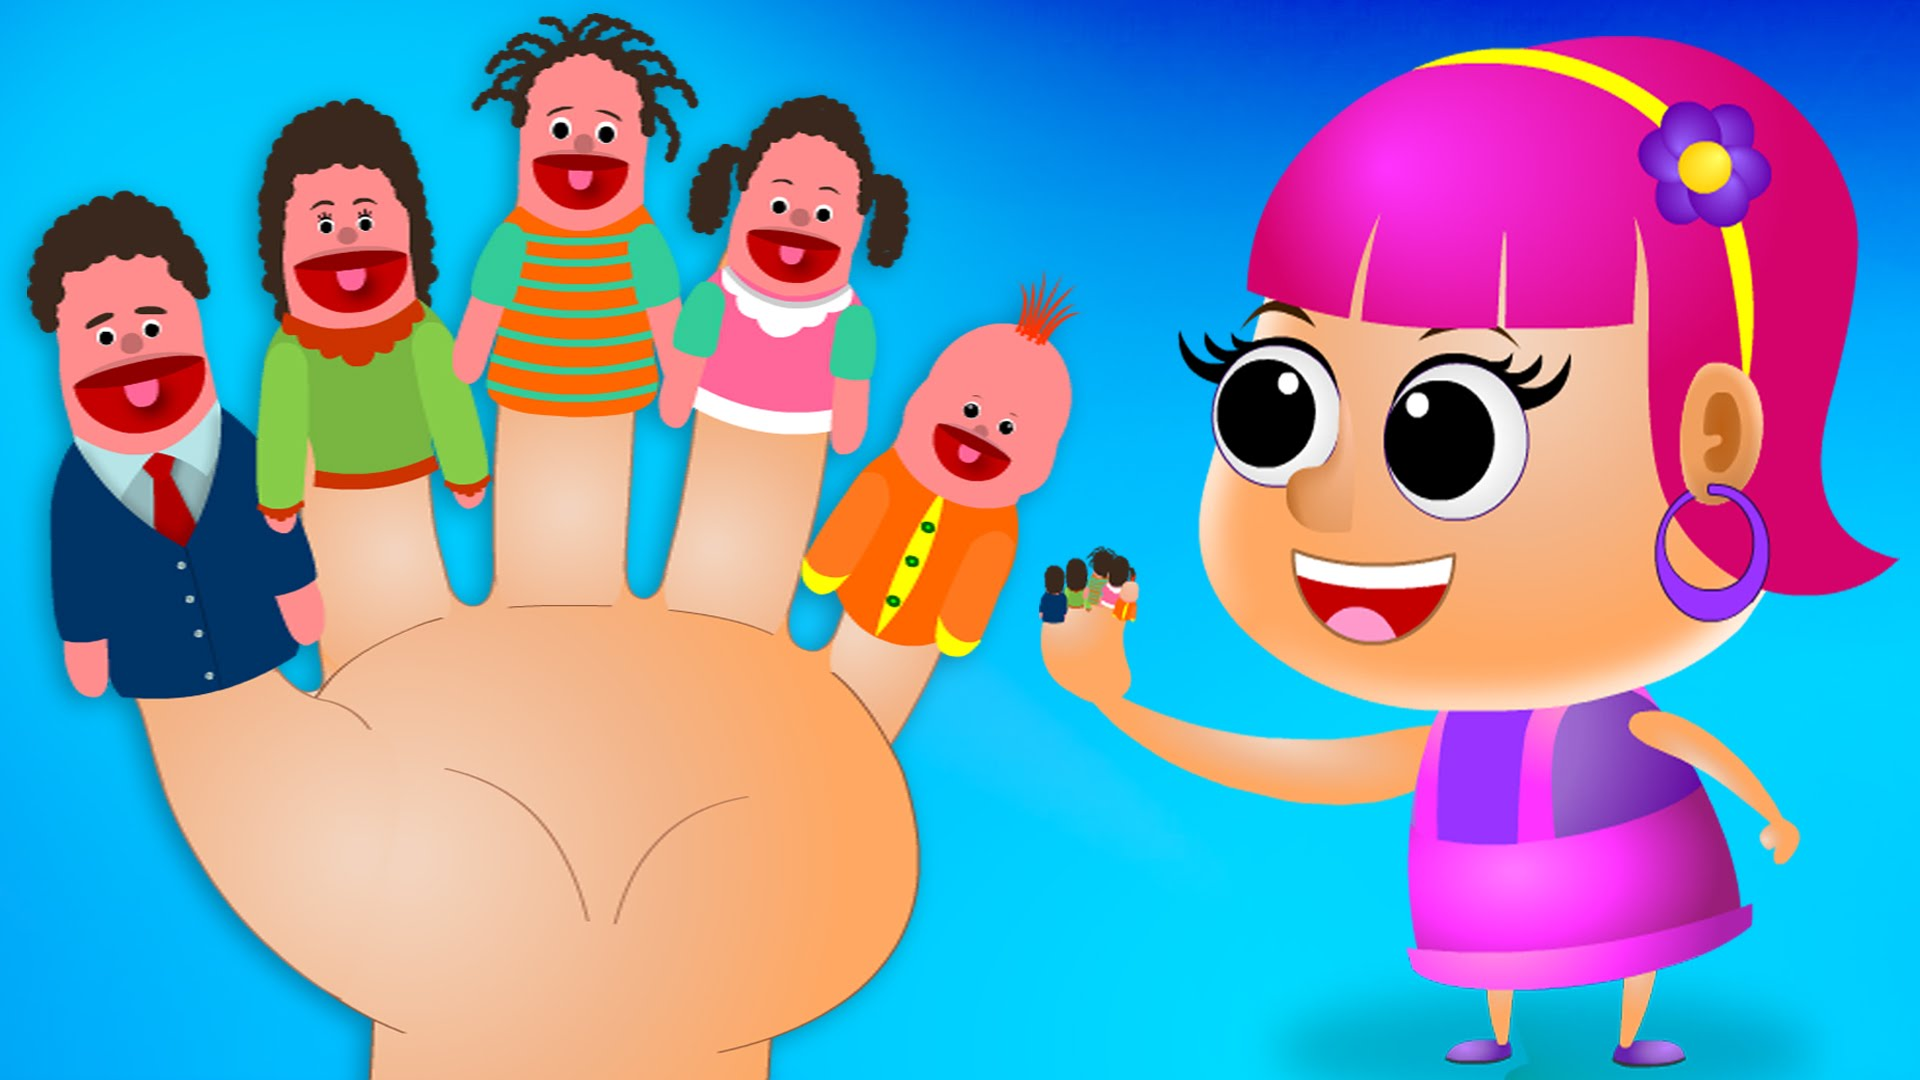 Families clipart puppet. Top finger family collection